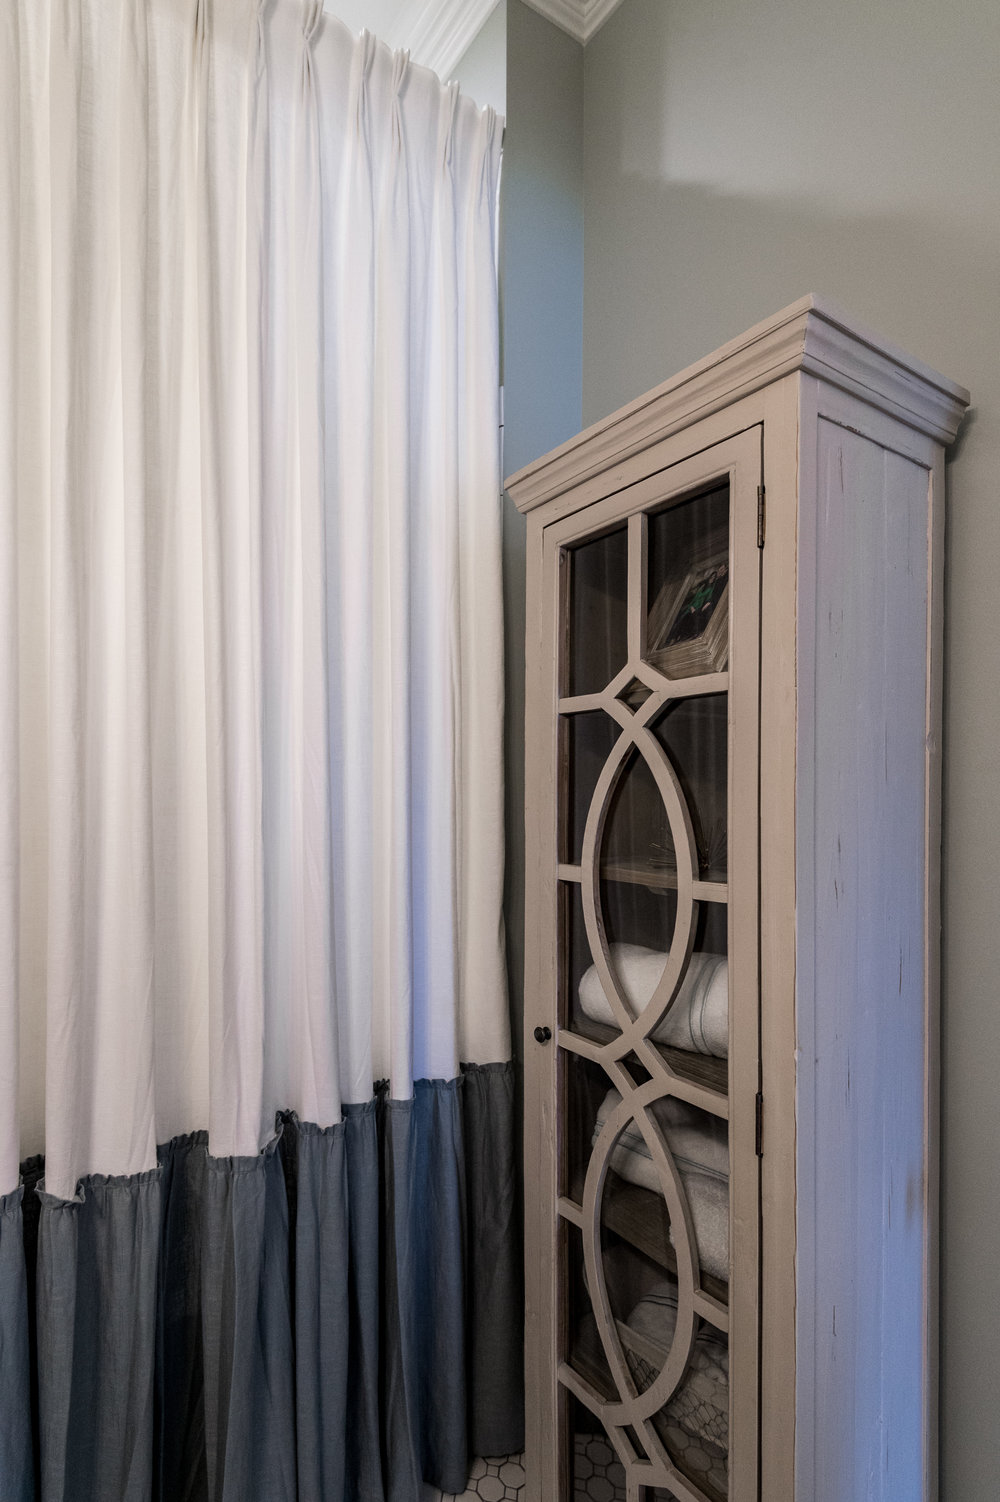 KHB Interiors details new orleans interior designer decorator old metairie details custom shower curtain.jpg